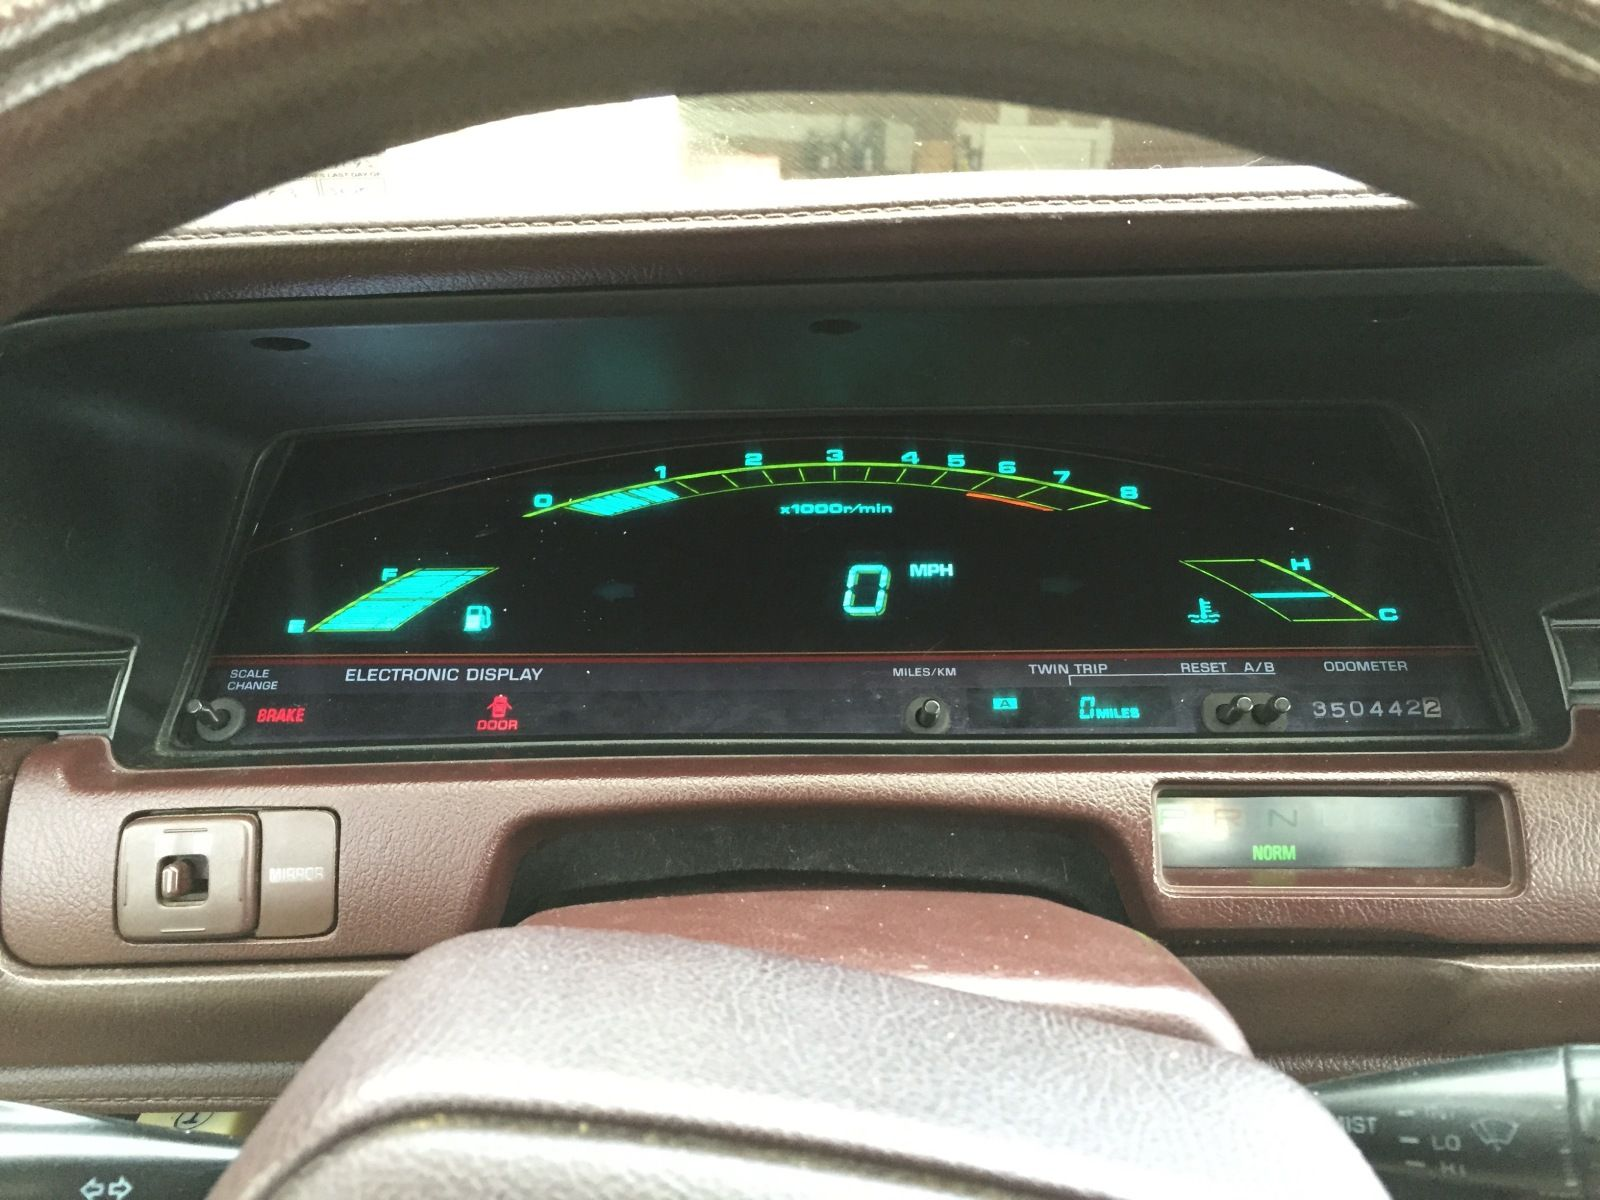 A C B Aed D B Fba on 1987 chevy truck digital dash gauges